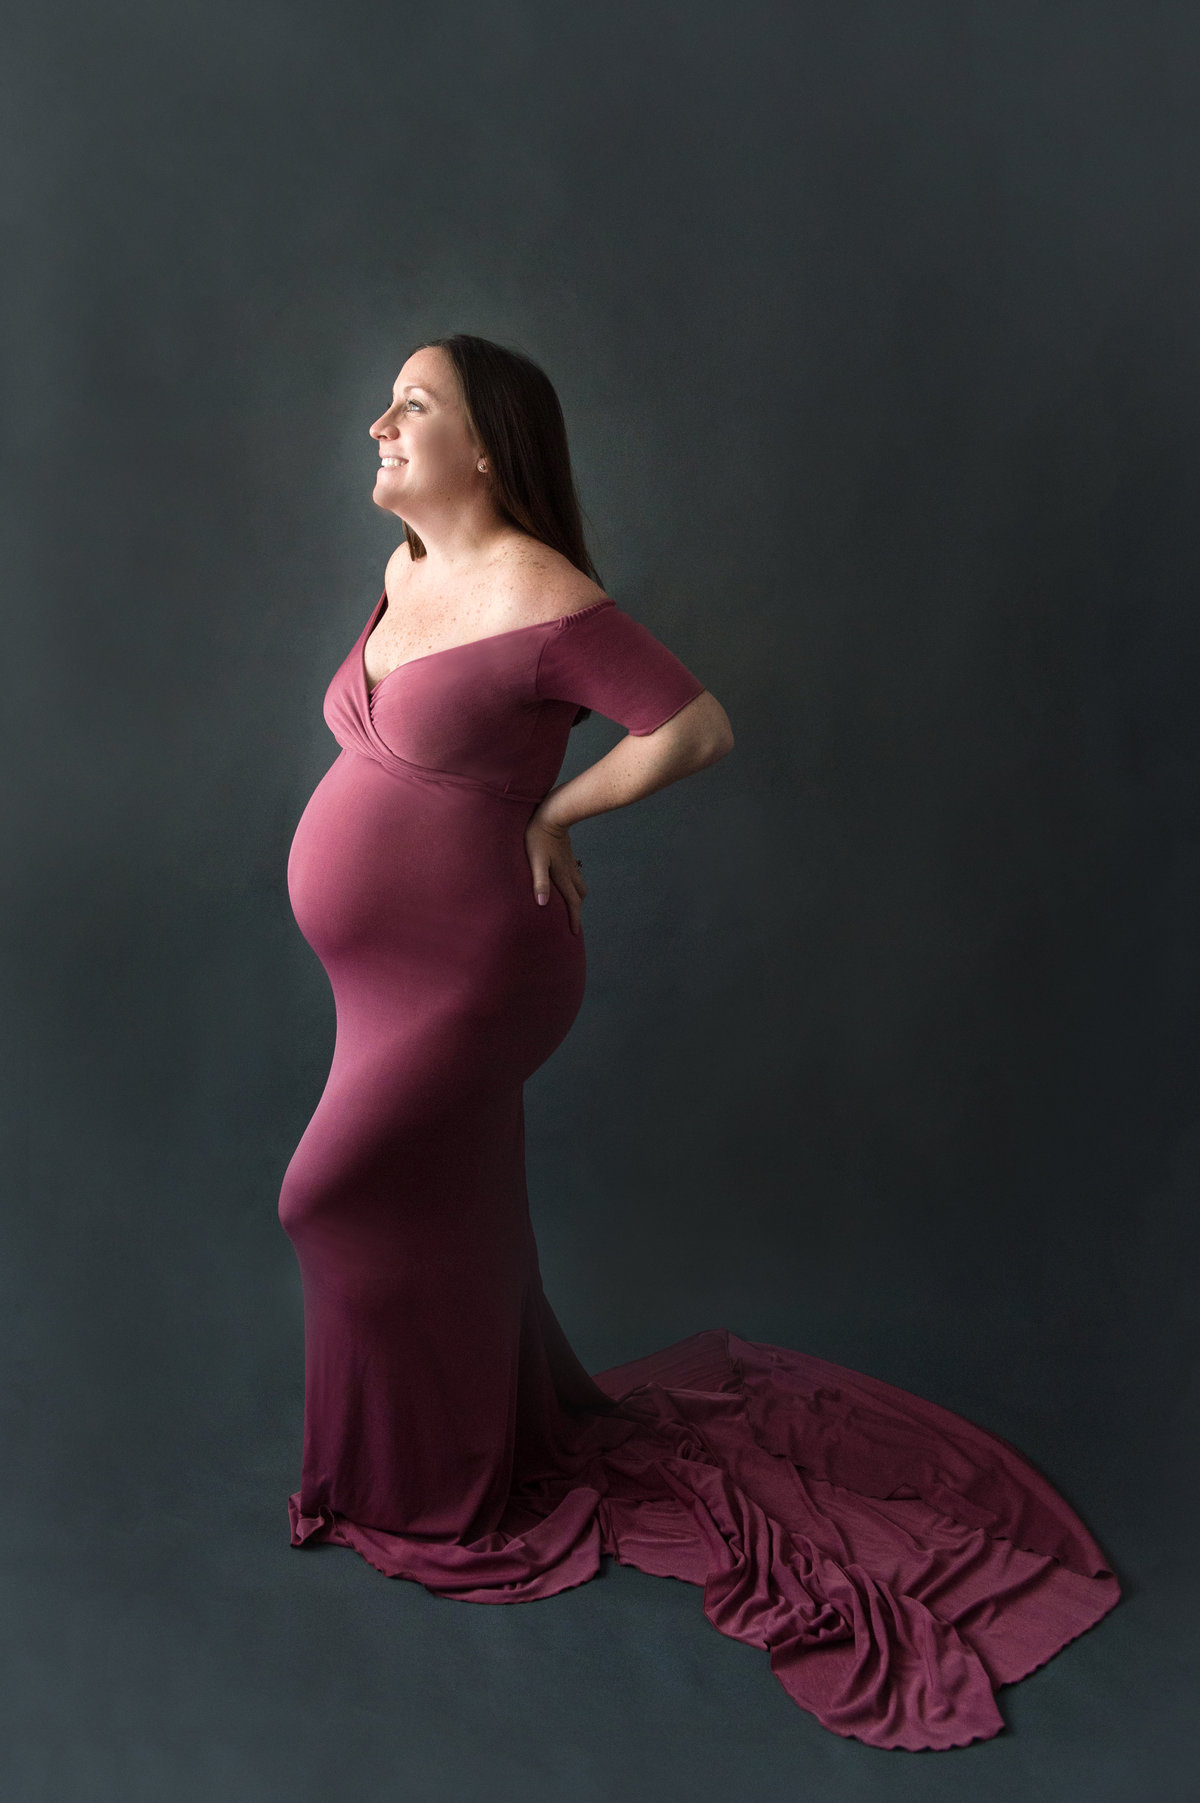 amanda-maternity-session-imagery-by-marianne-2018-34